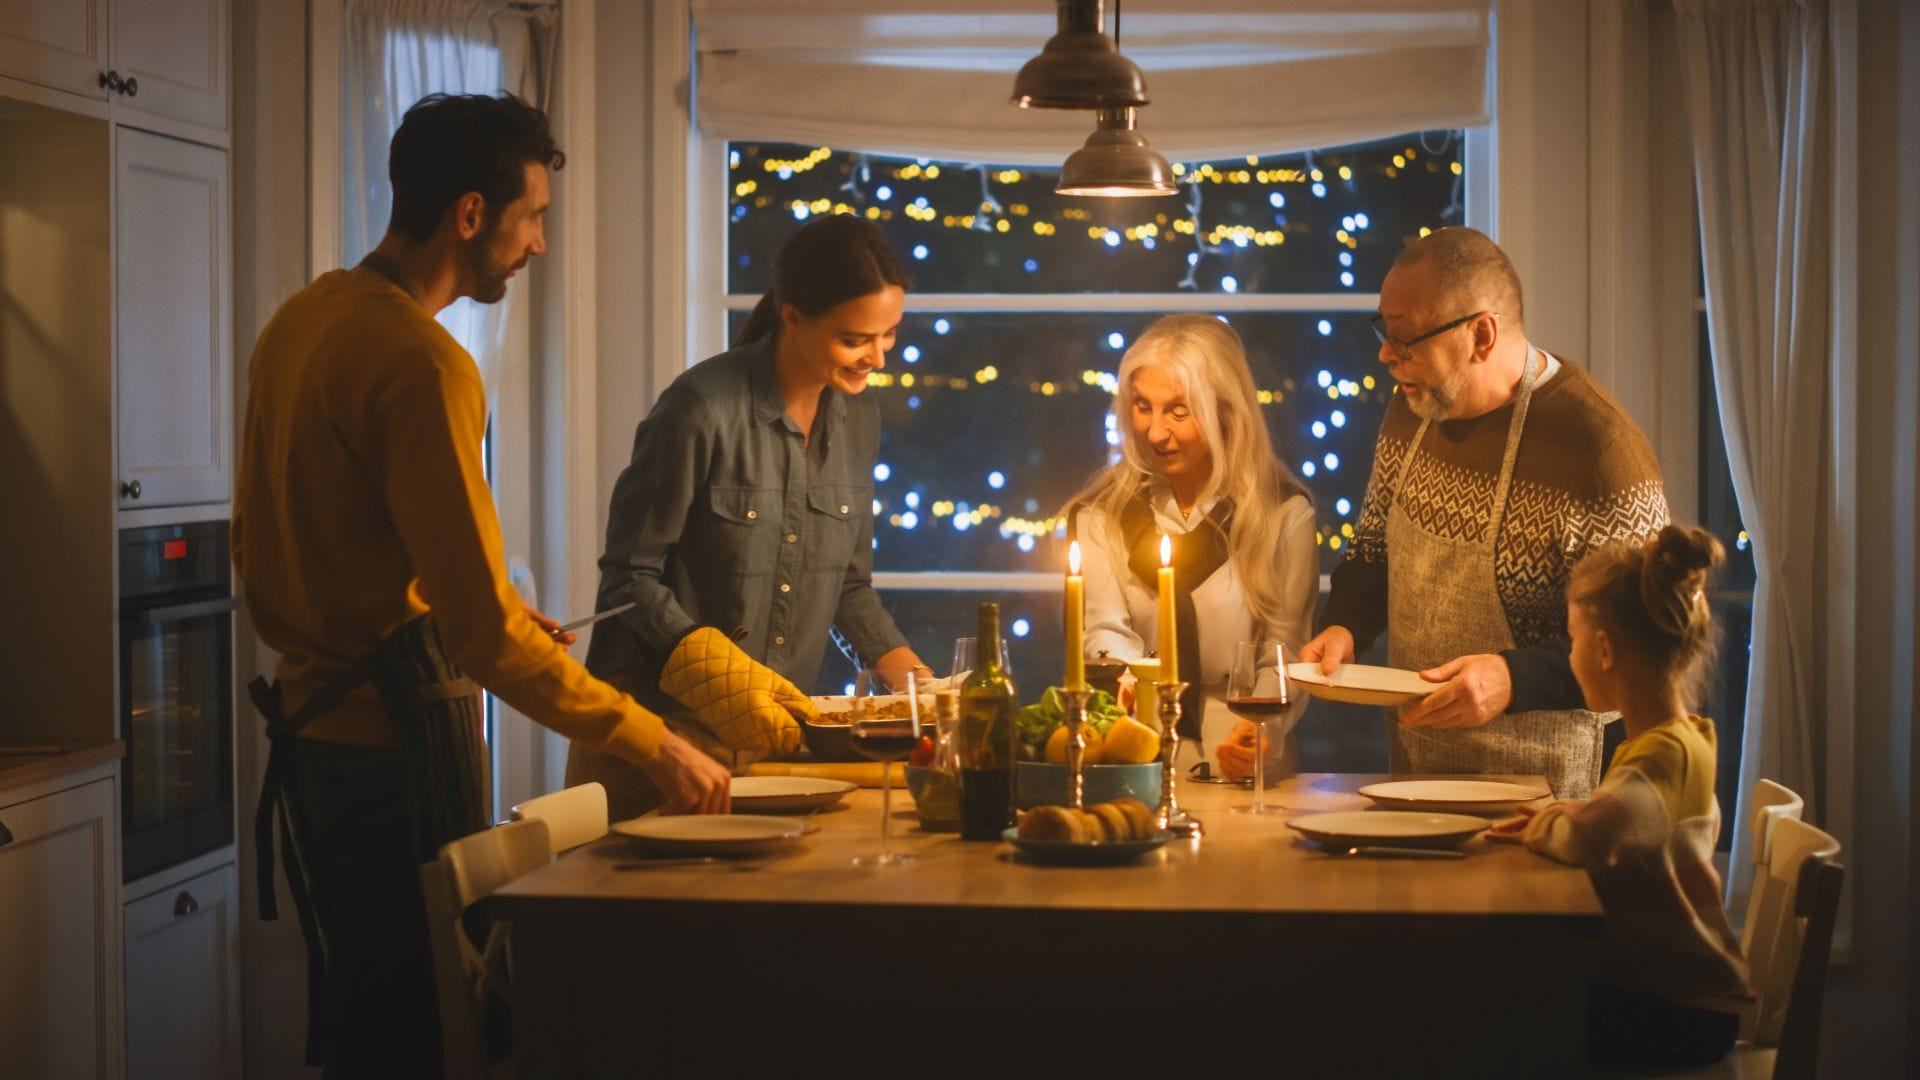 A young couple and a little girl serving an elderly couple a candlelight dinner.